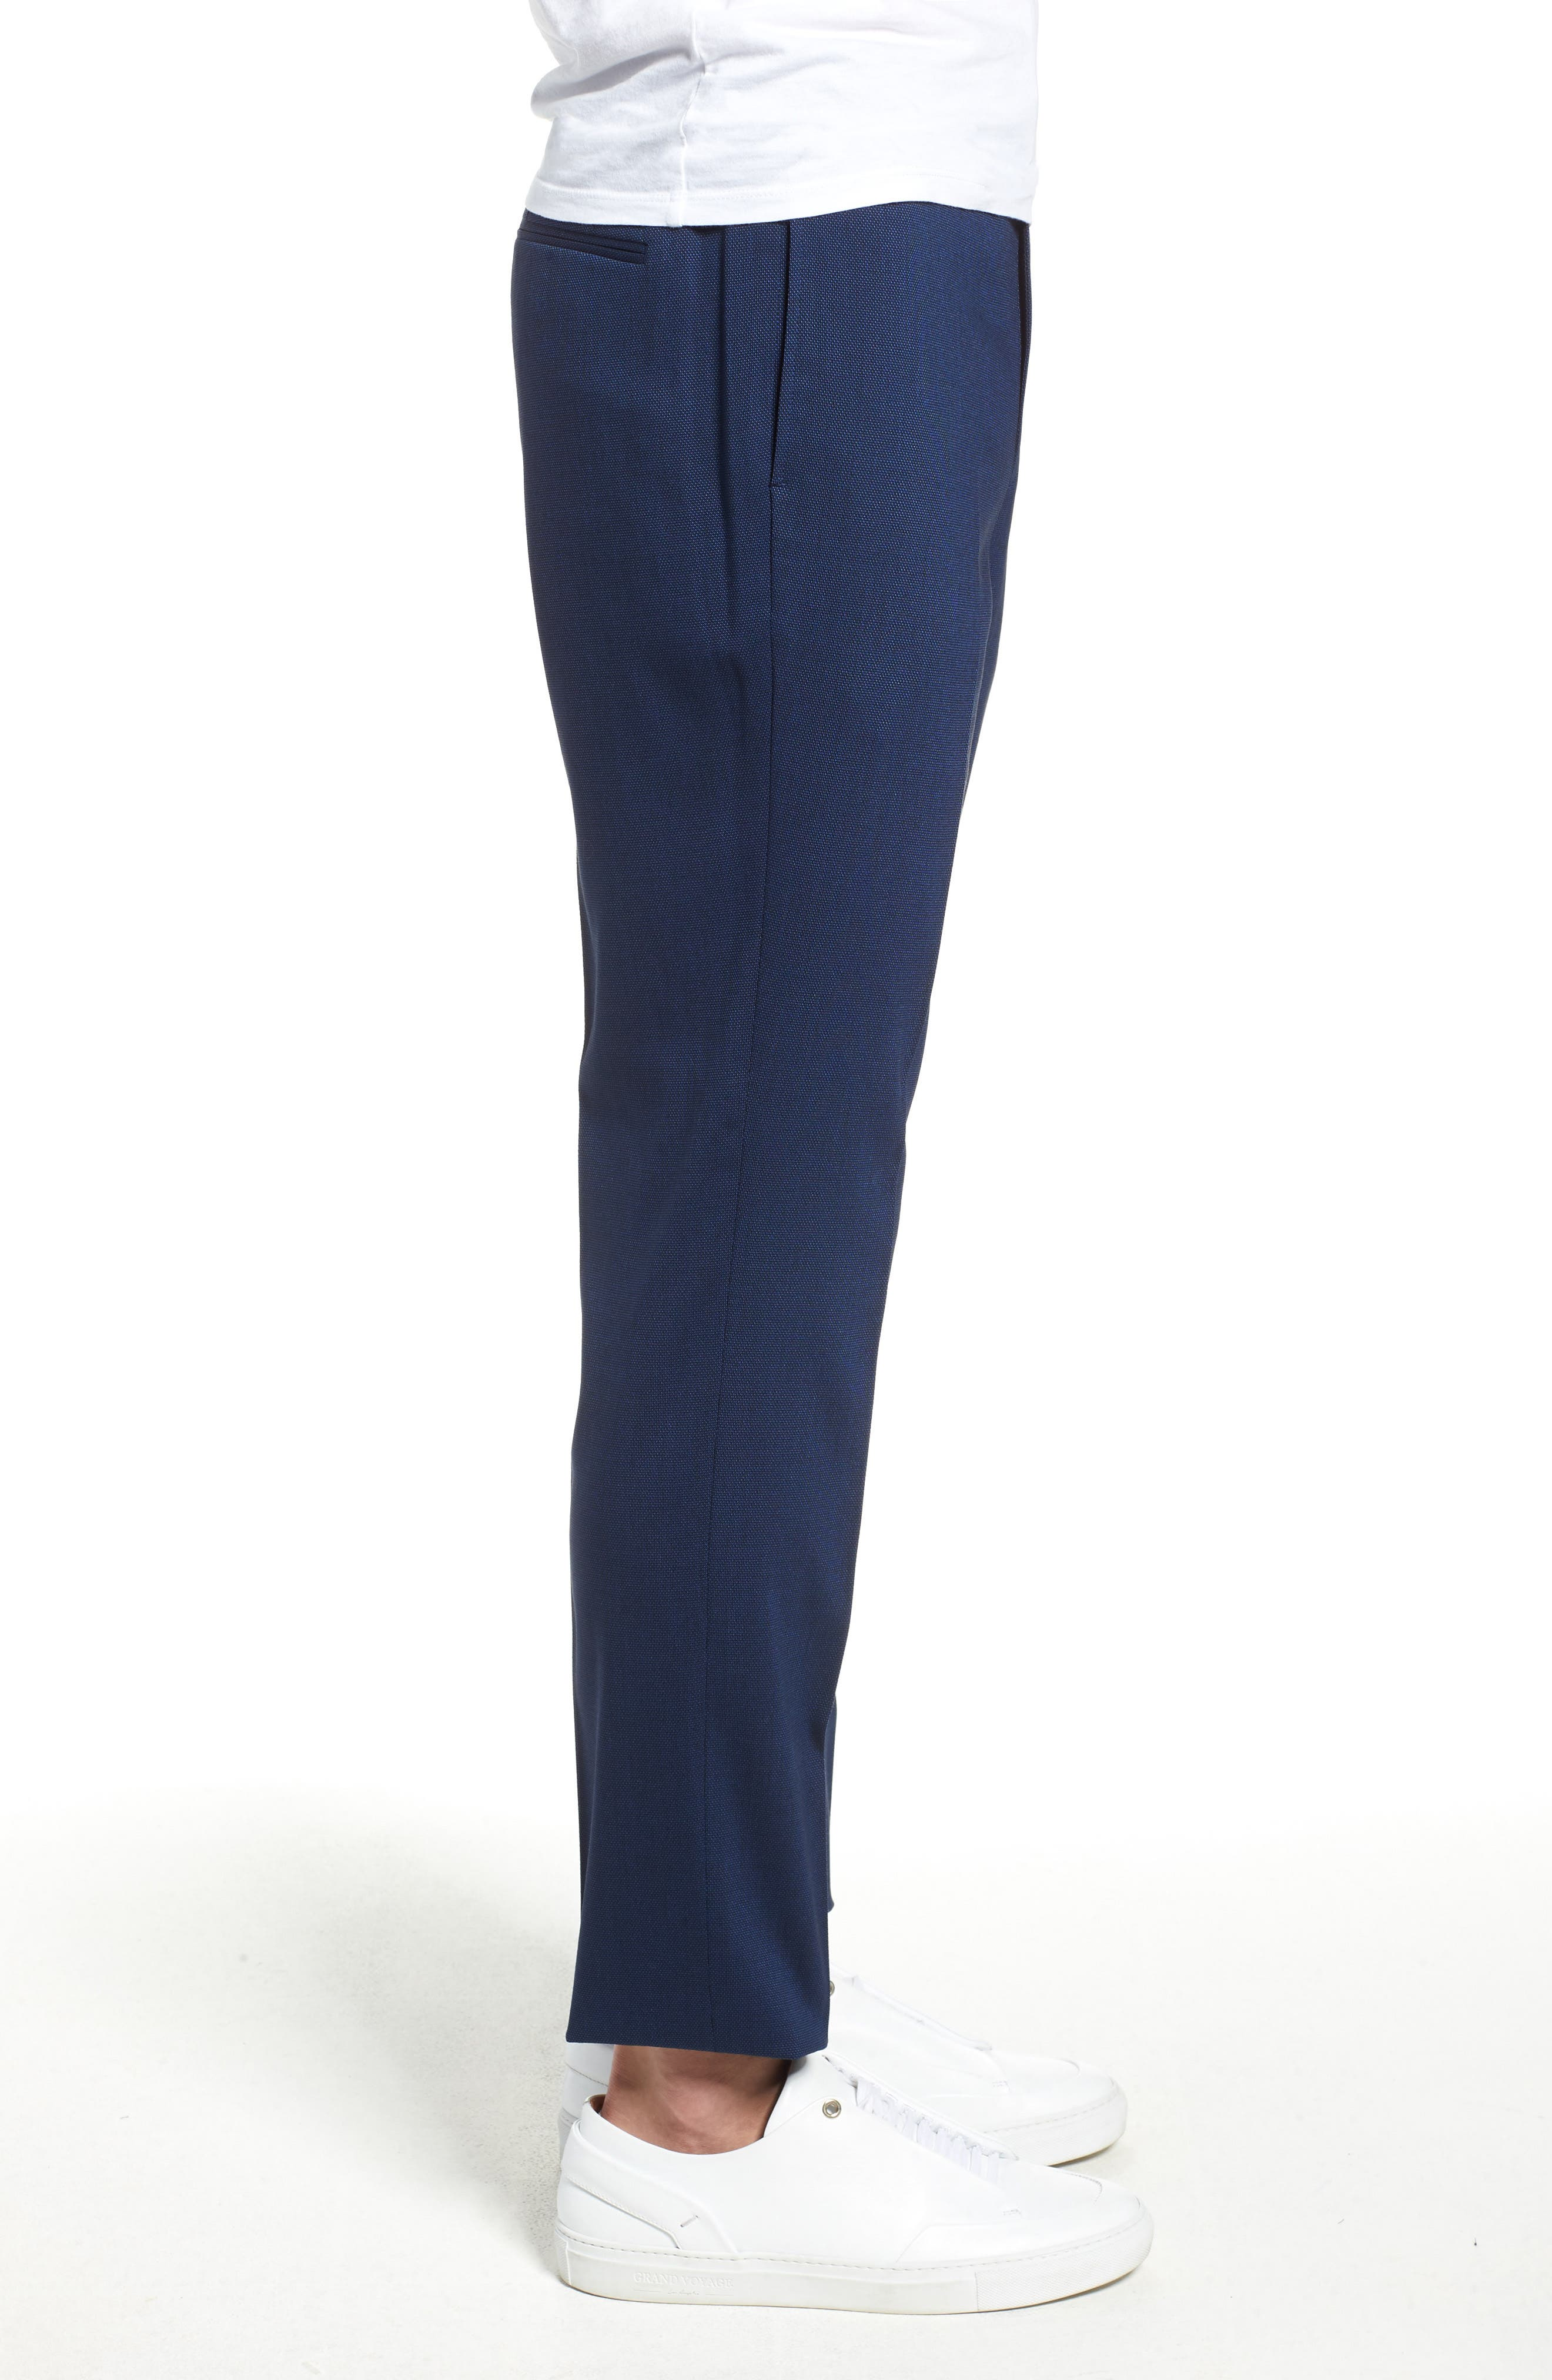 TOPMAN, Skinny Fit Suit Pants, Alternate thumbnail 3, color, MID BLUE